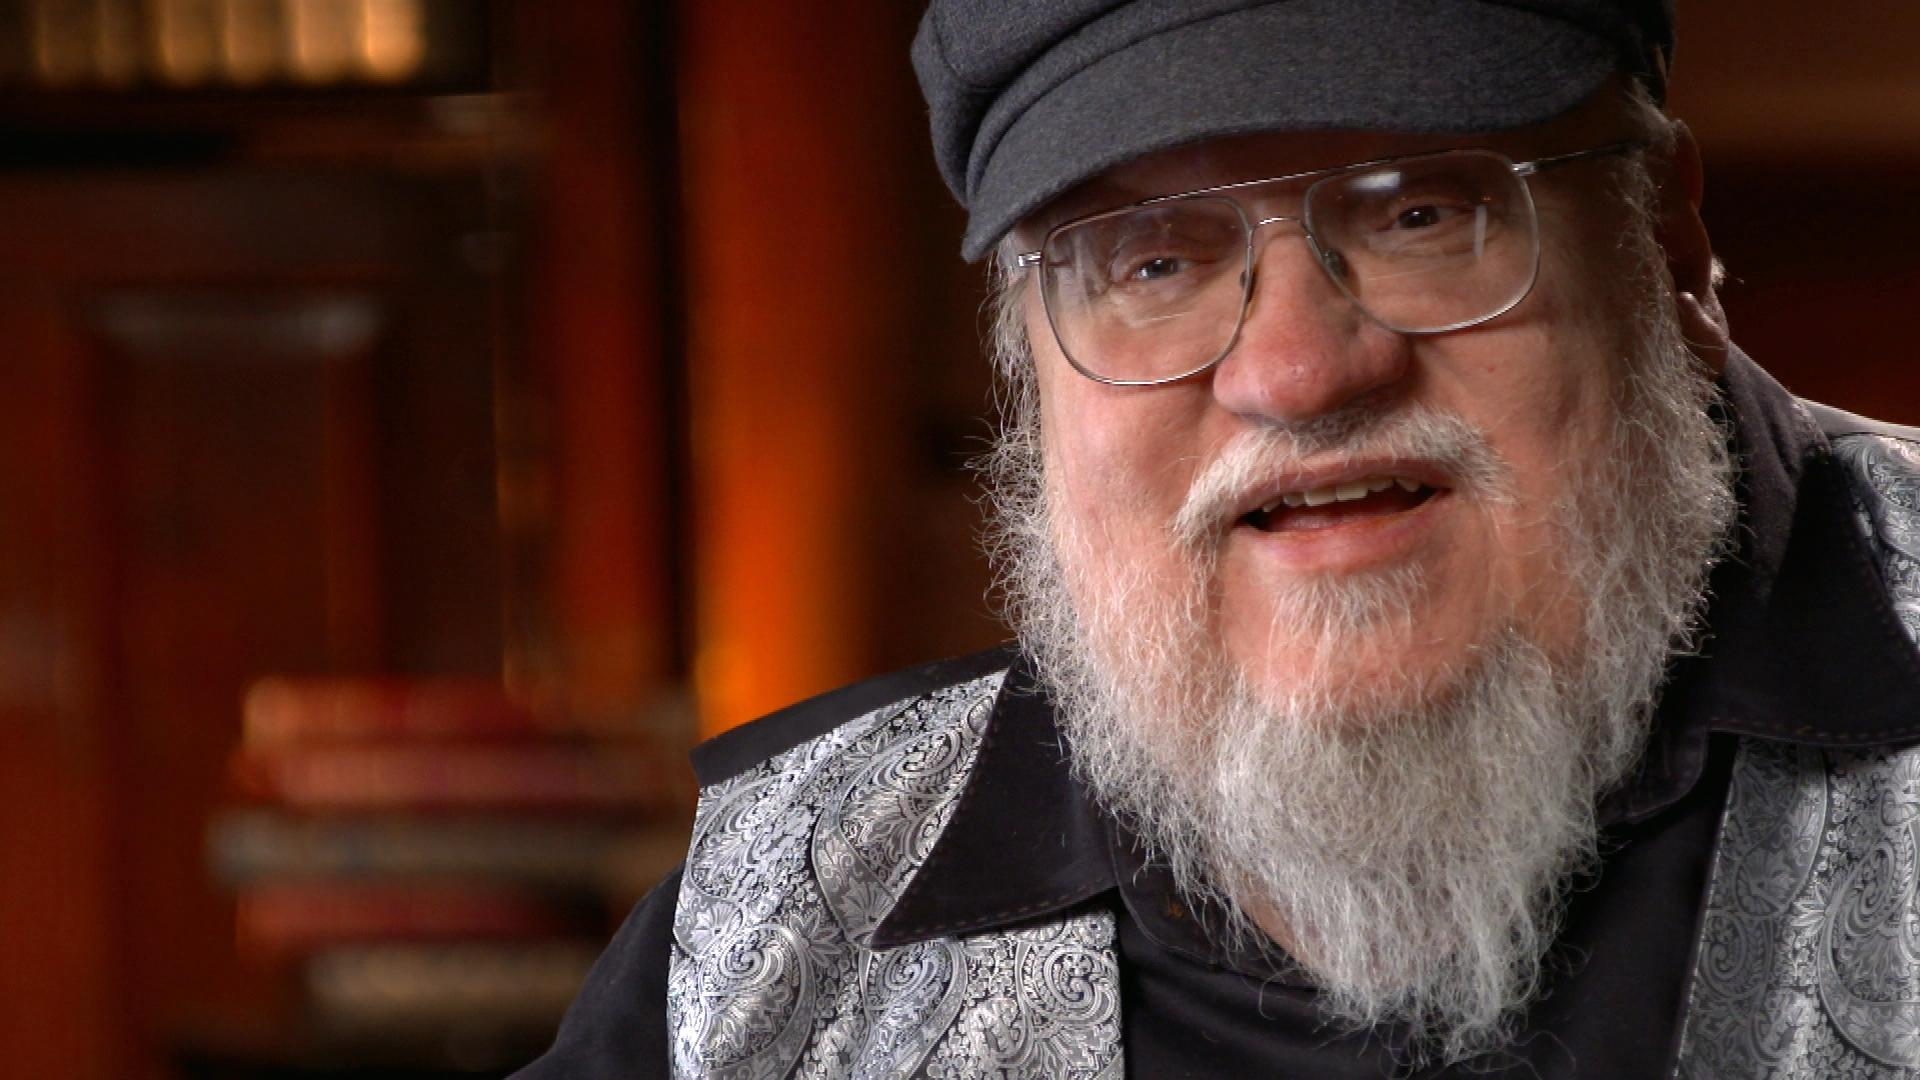 George RR Martin on how he writes The Winds of Winter Book